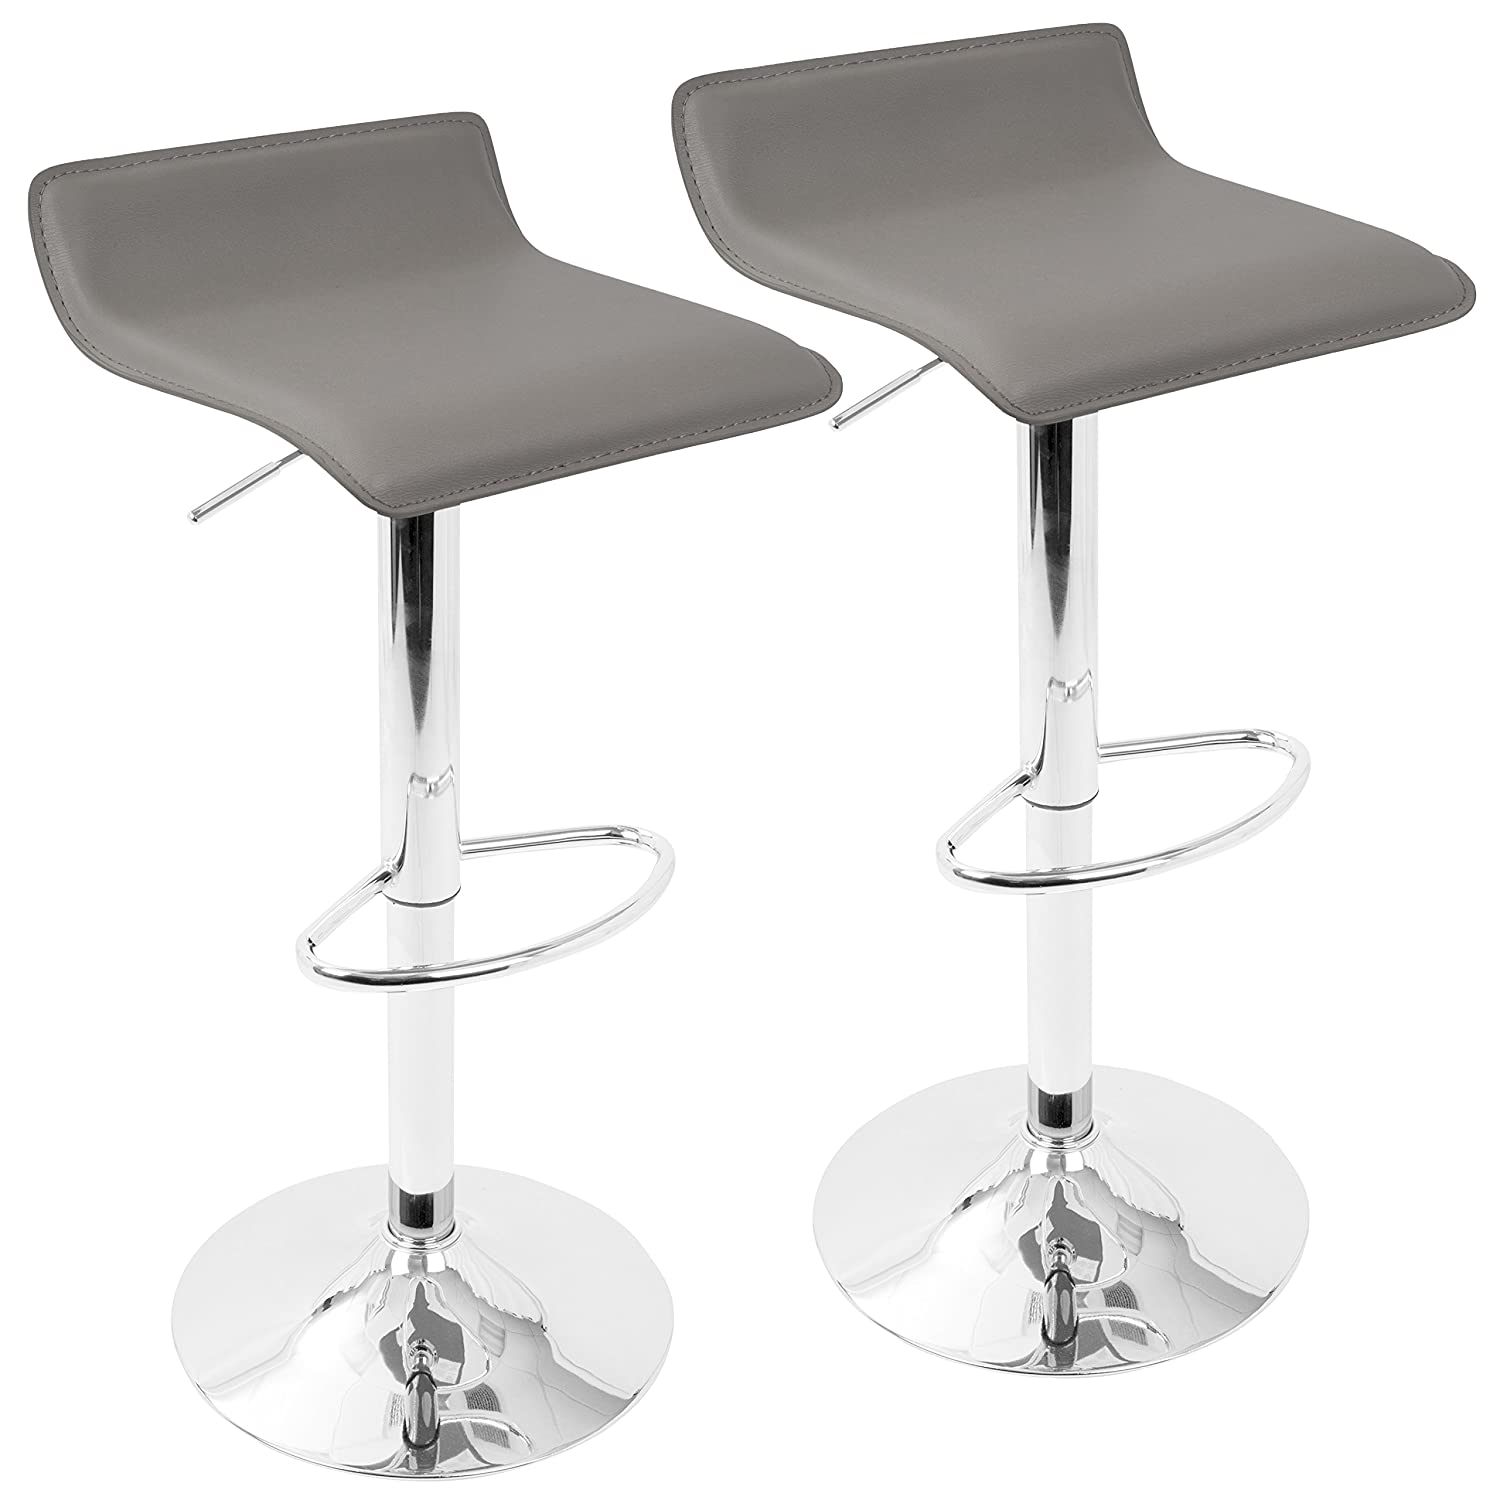 Incredible Woybr Bs Gy2 Pvc Leather Chrome Ale Barstool Set Of 2 Alphanode Cool Chair Designs And Ideas Alphanodeonline